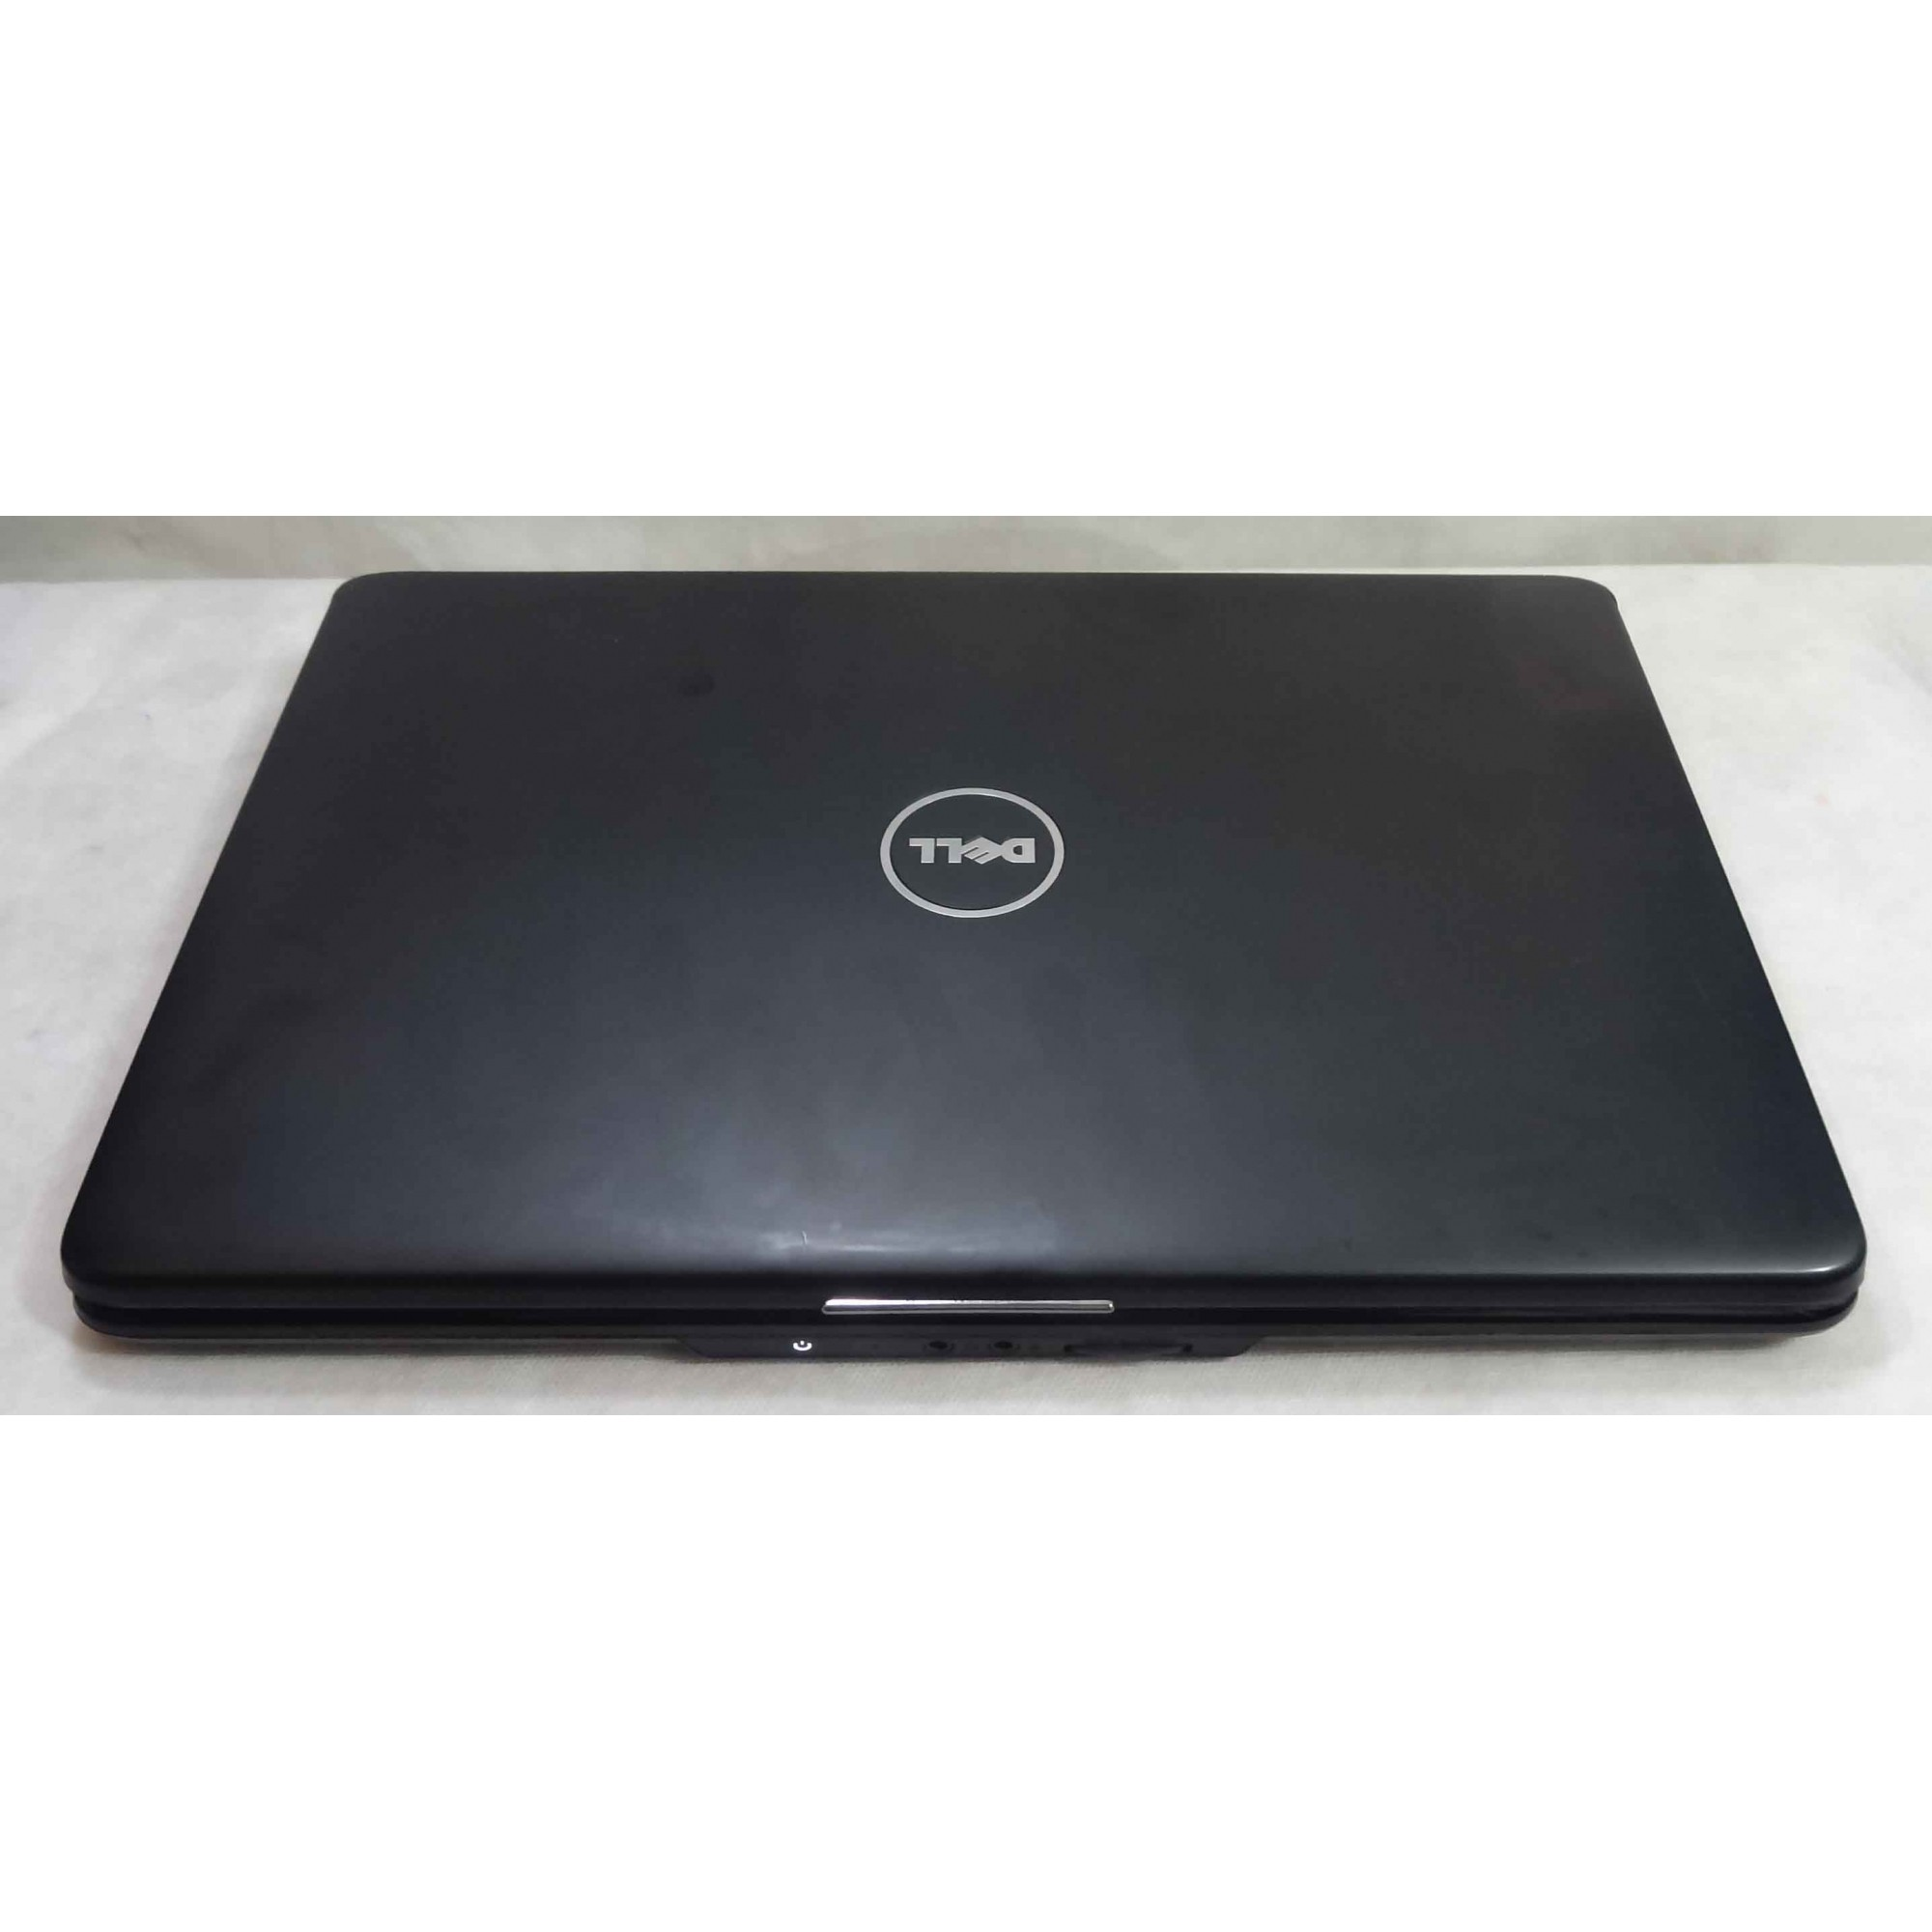 Notebook Dell Inspiron 1545 15.6'' Intel Pentium Dual Core 2.2GHz 4GB HD-250GB